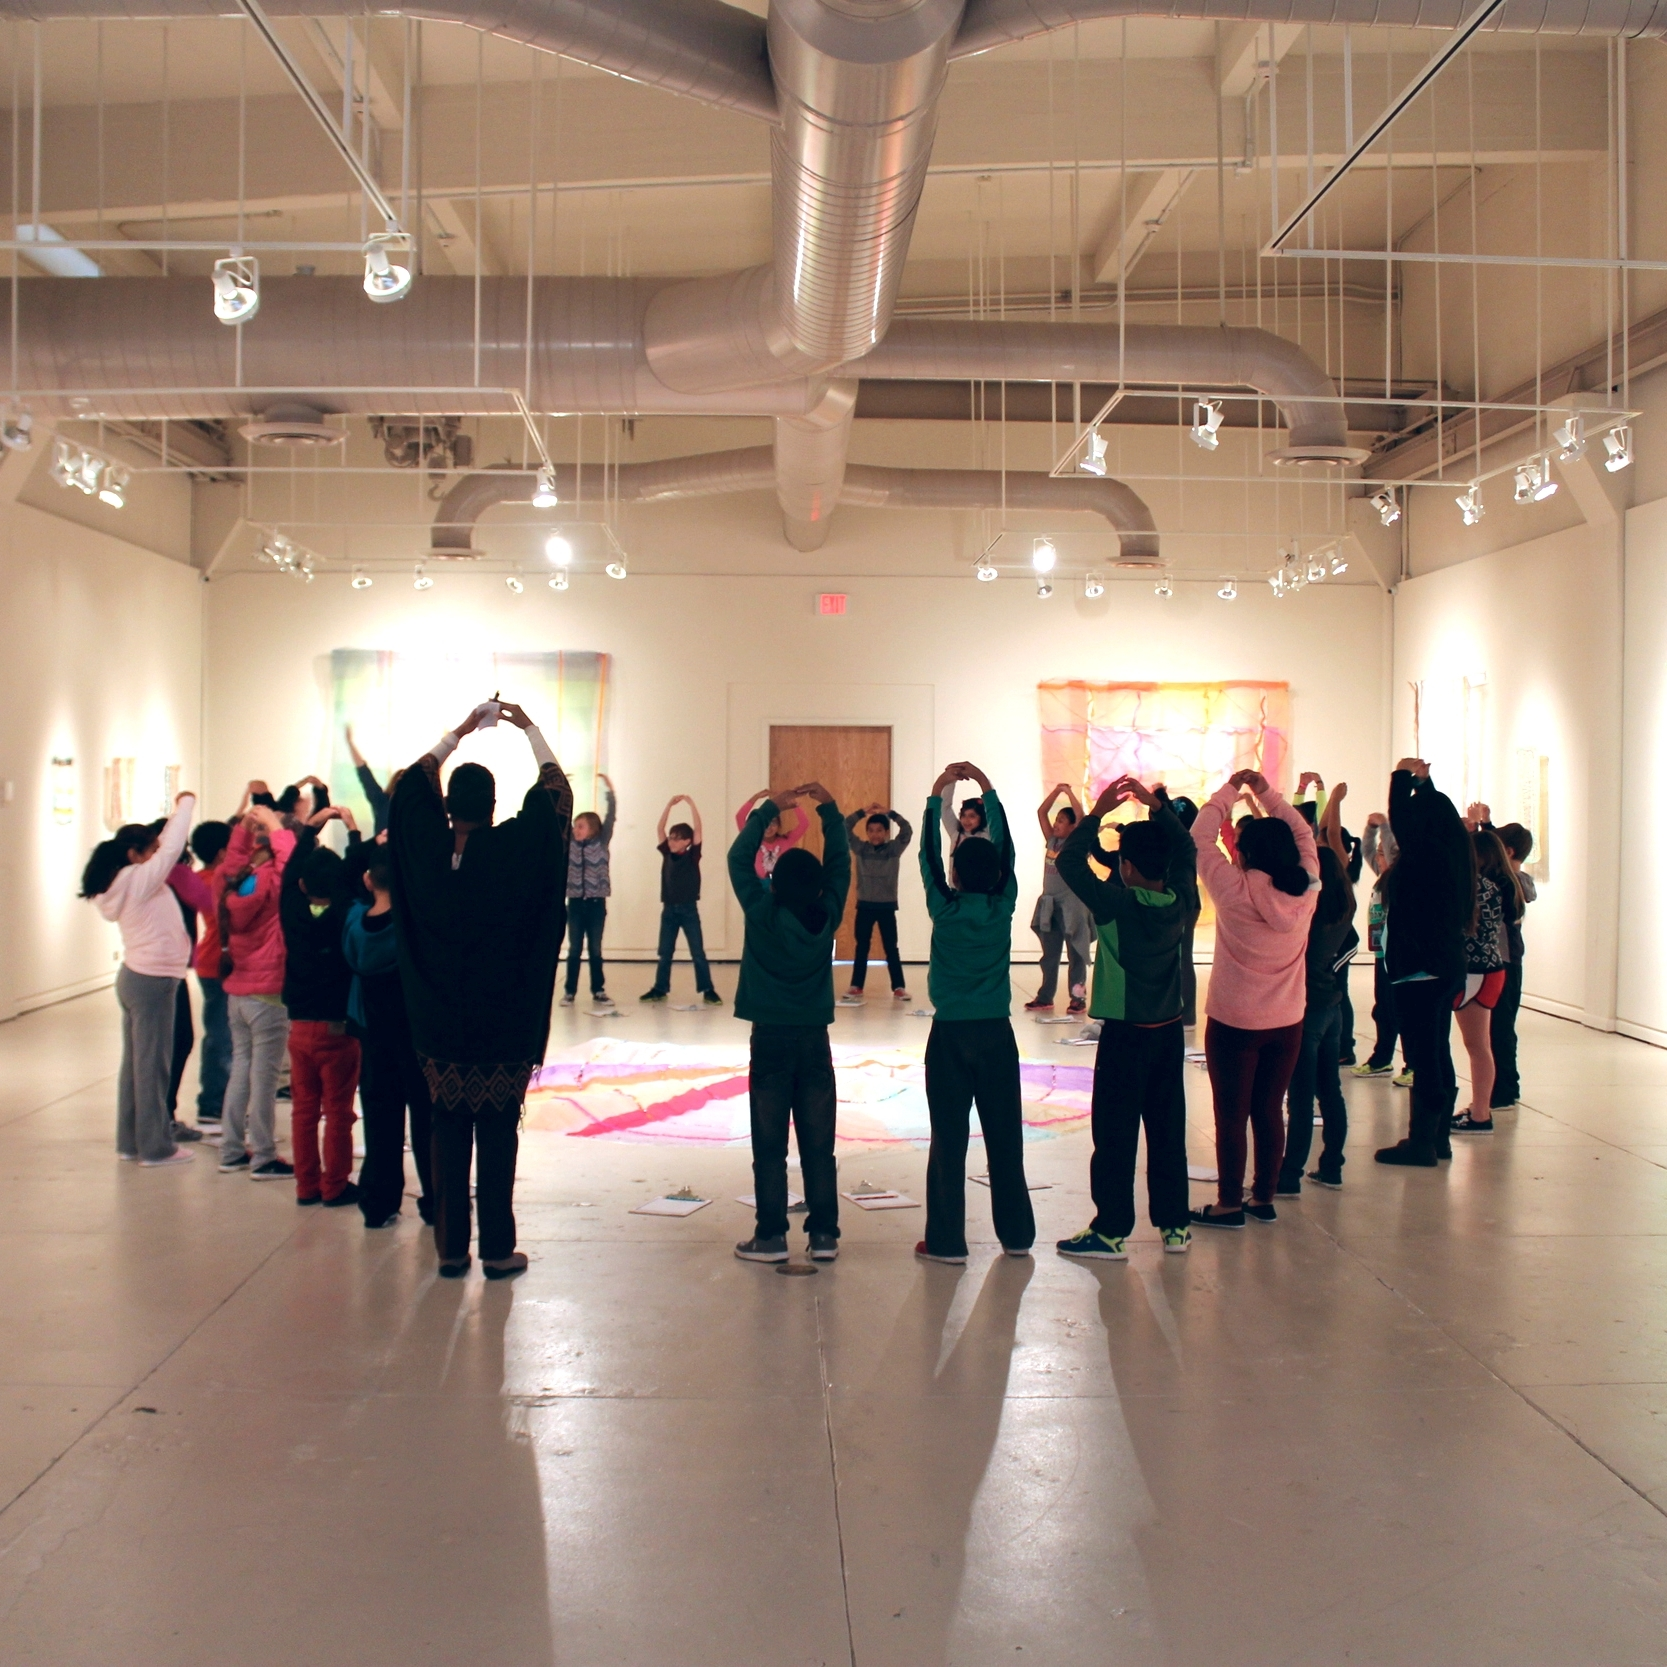 Denton ISD students create original dances in the galleries inspired by the works of artist Cathy Breslaw.